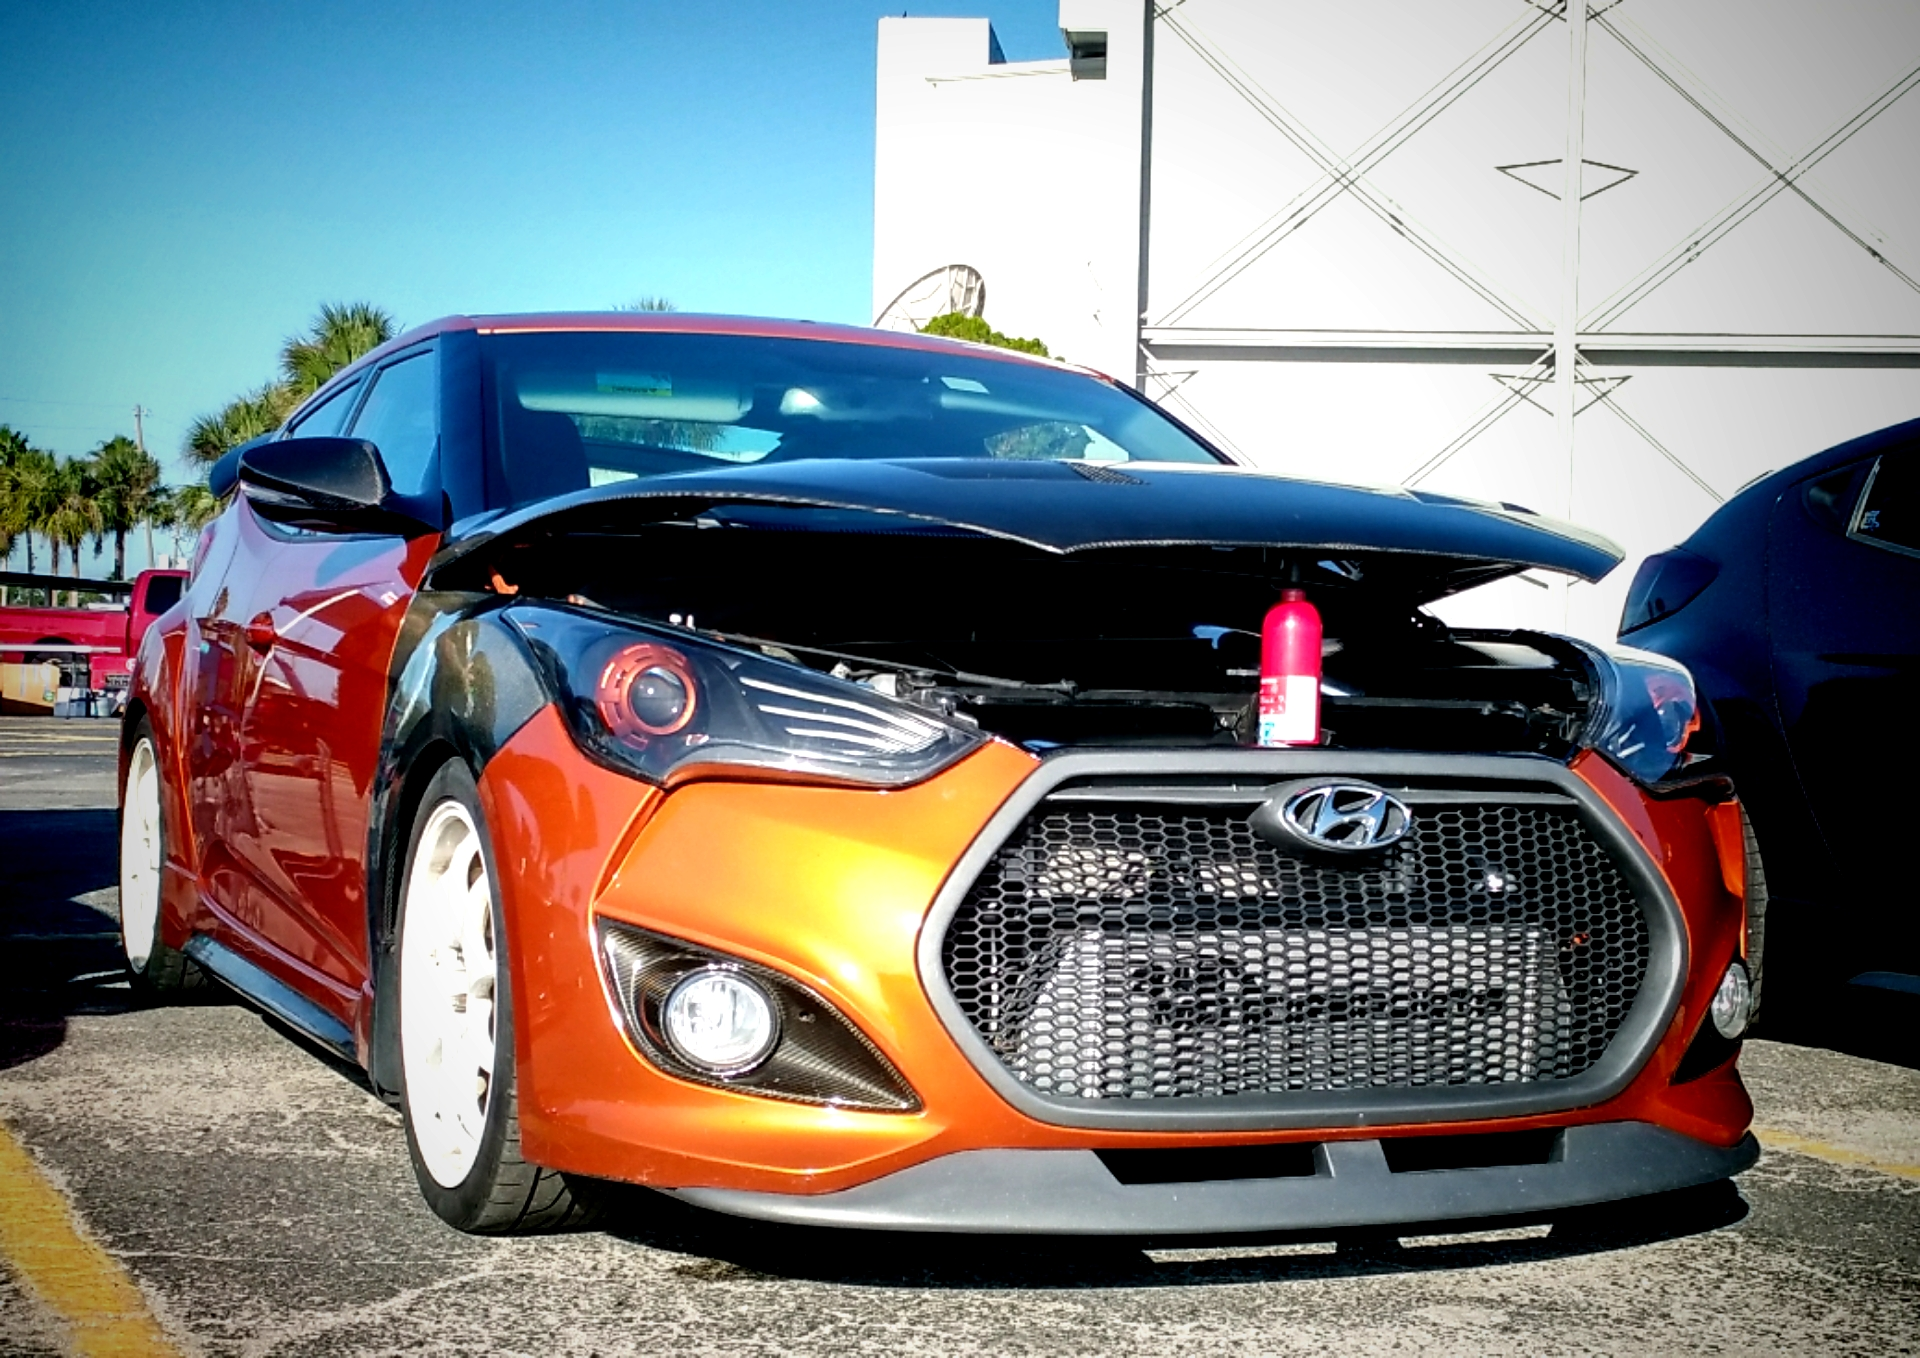 hight resolution of hyundai veloster turbo intercooler monster front mount intercooler 845 motorsportsmonster front mount intercooler